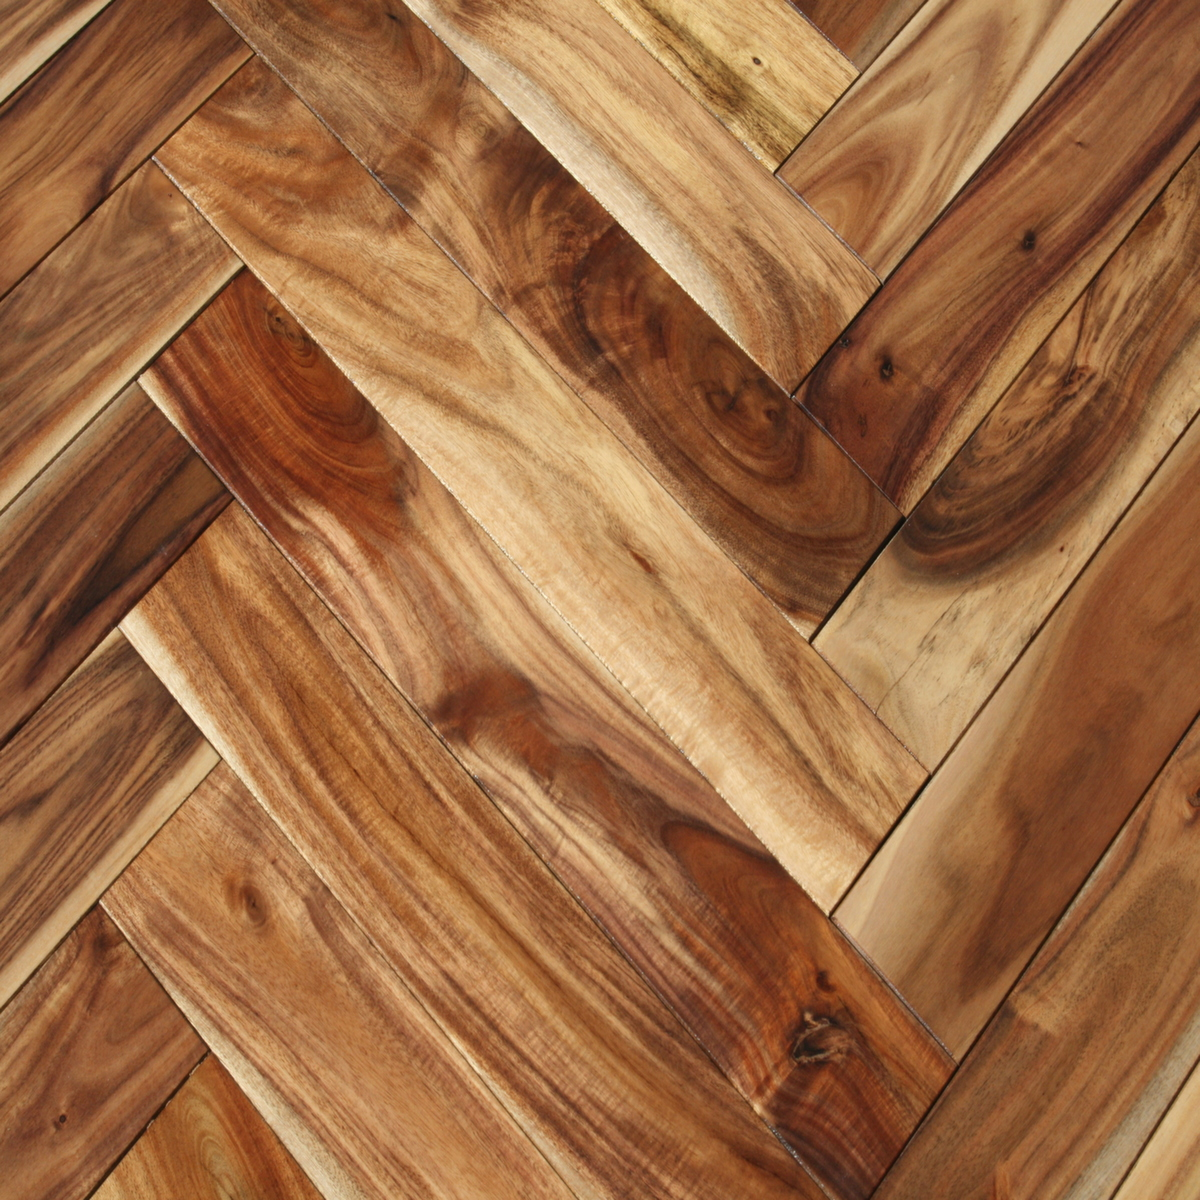 Acacia natural herringbone hardwood flooring unique wood for Flooring products